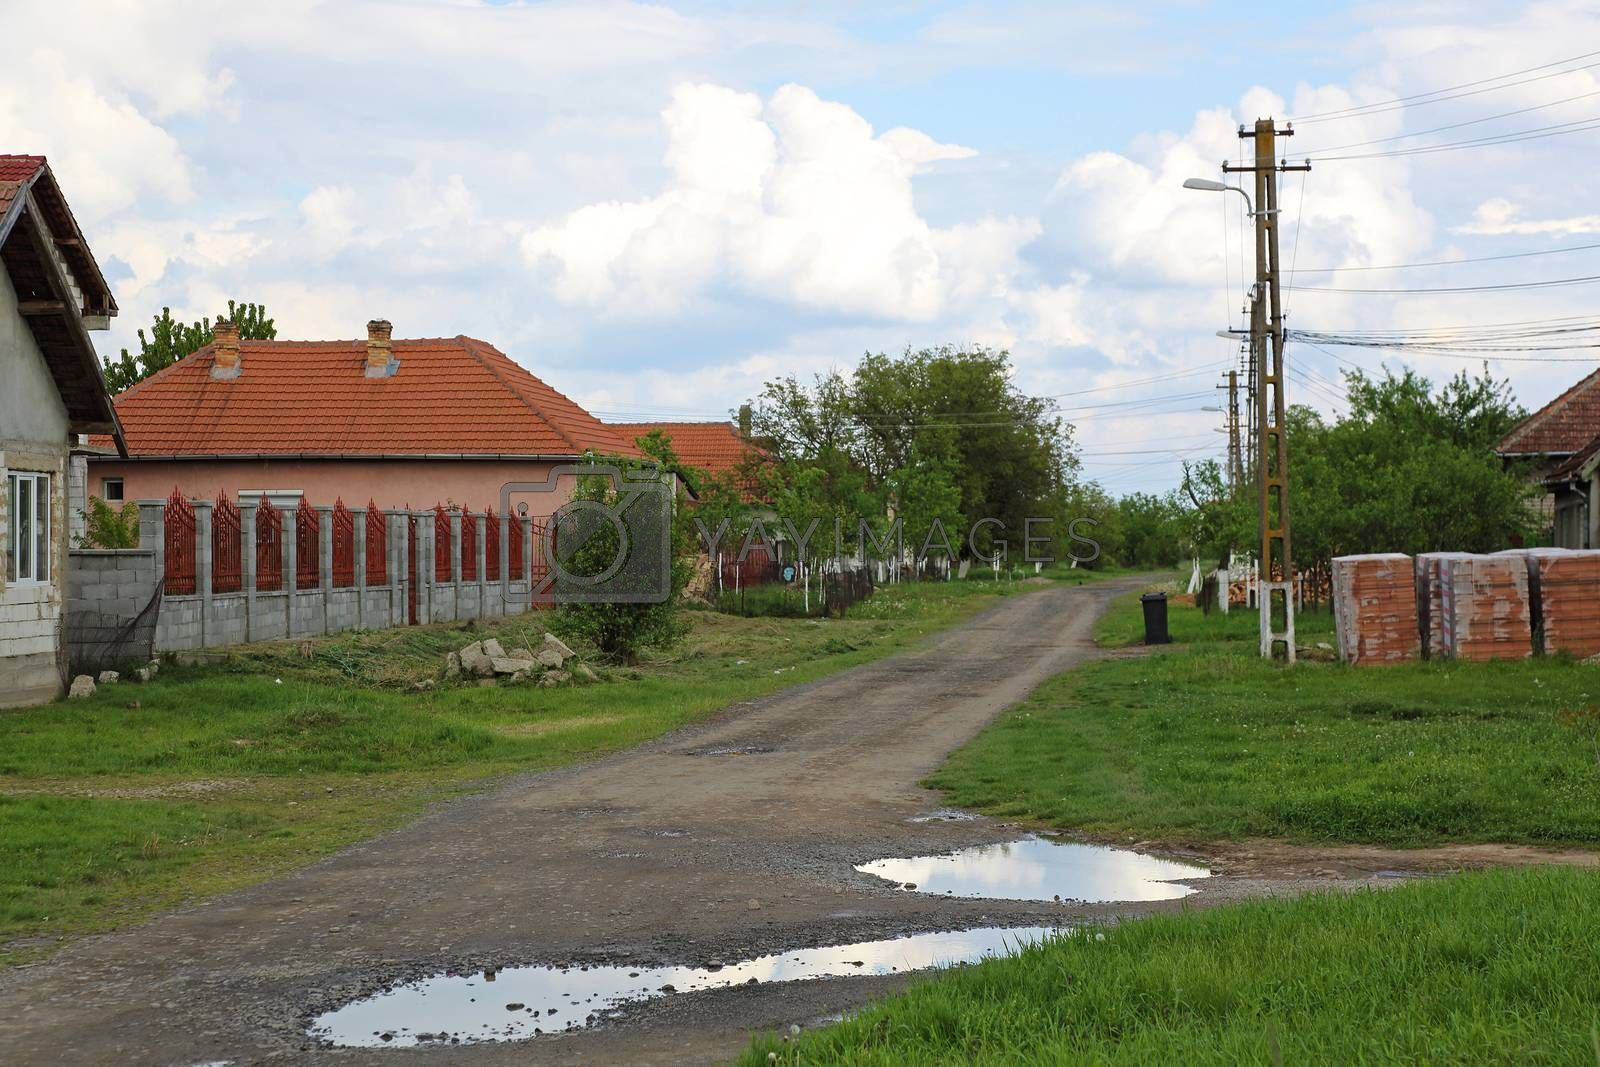 Royalty free image of Village in Romania by Baloncici